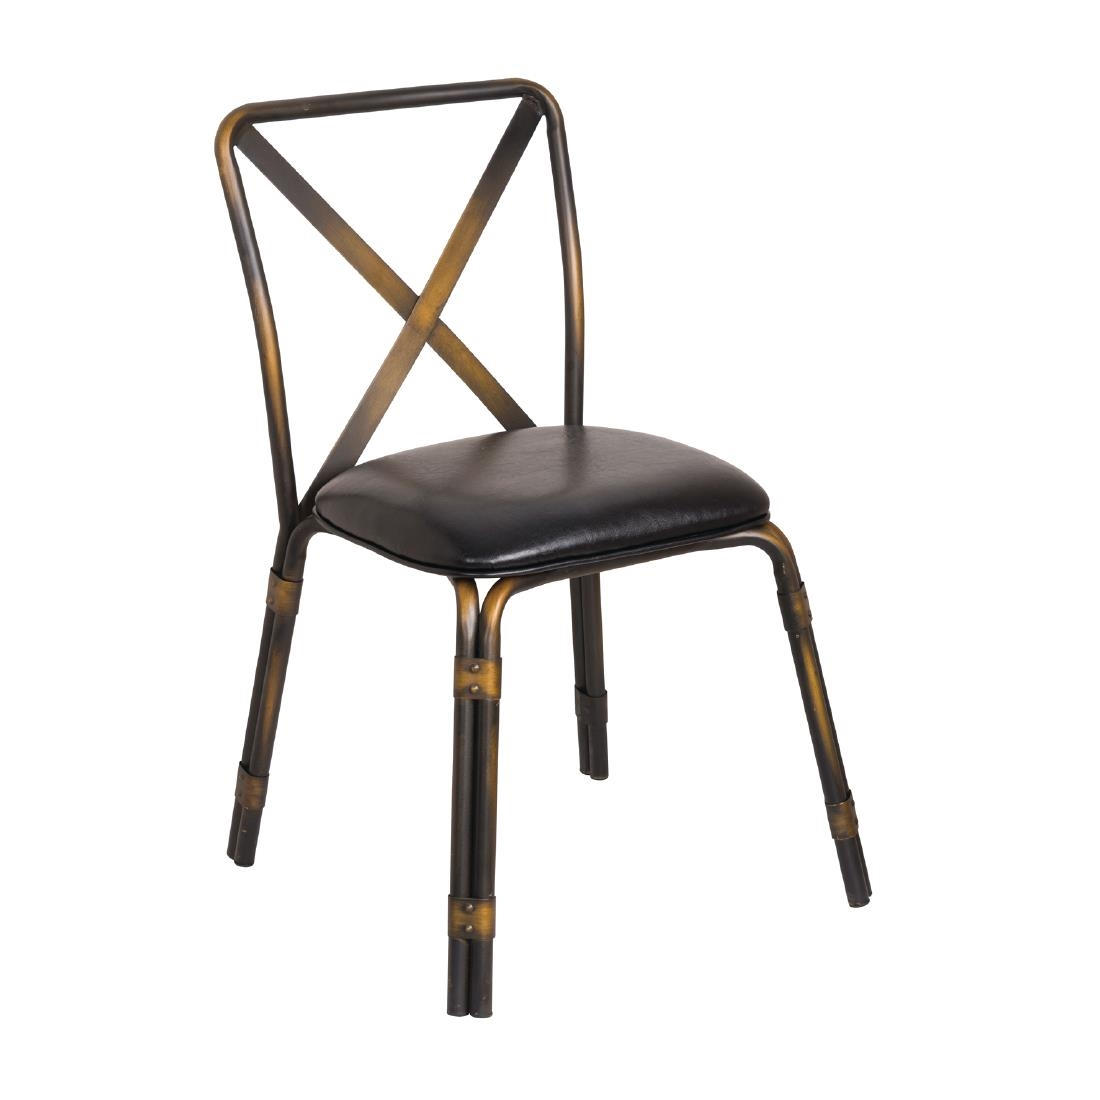 Copper Dining Chairs Bolero Antique Copper Steel Chairs With Black Pu Seat Pack Of 4